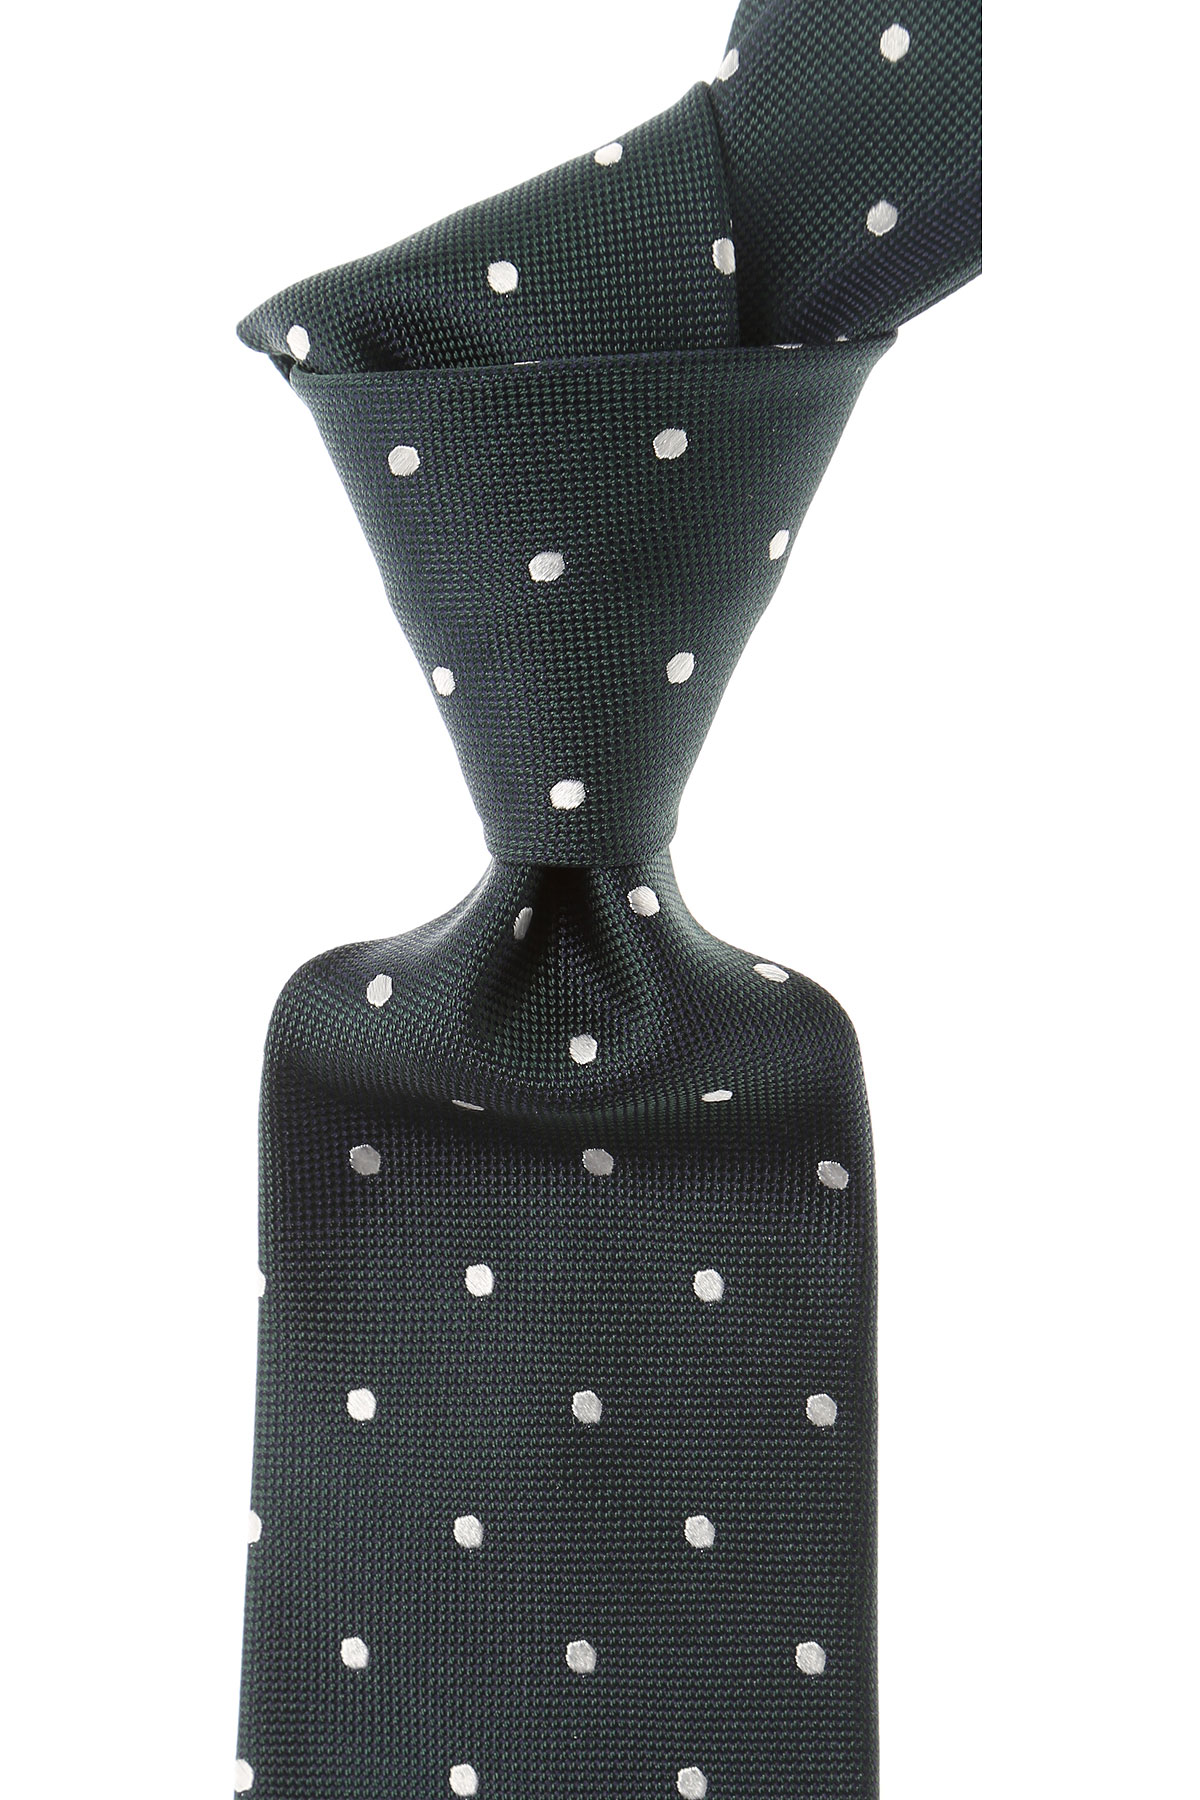 Giorgio_Armani_Ties_On_Sale_Midnight_Green_Silk_2019